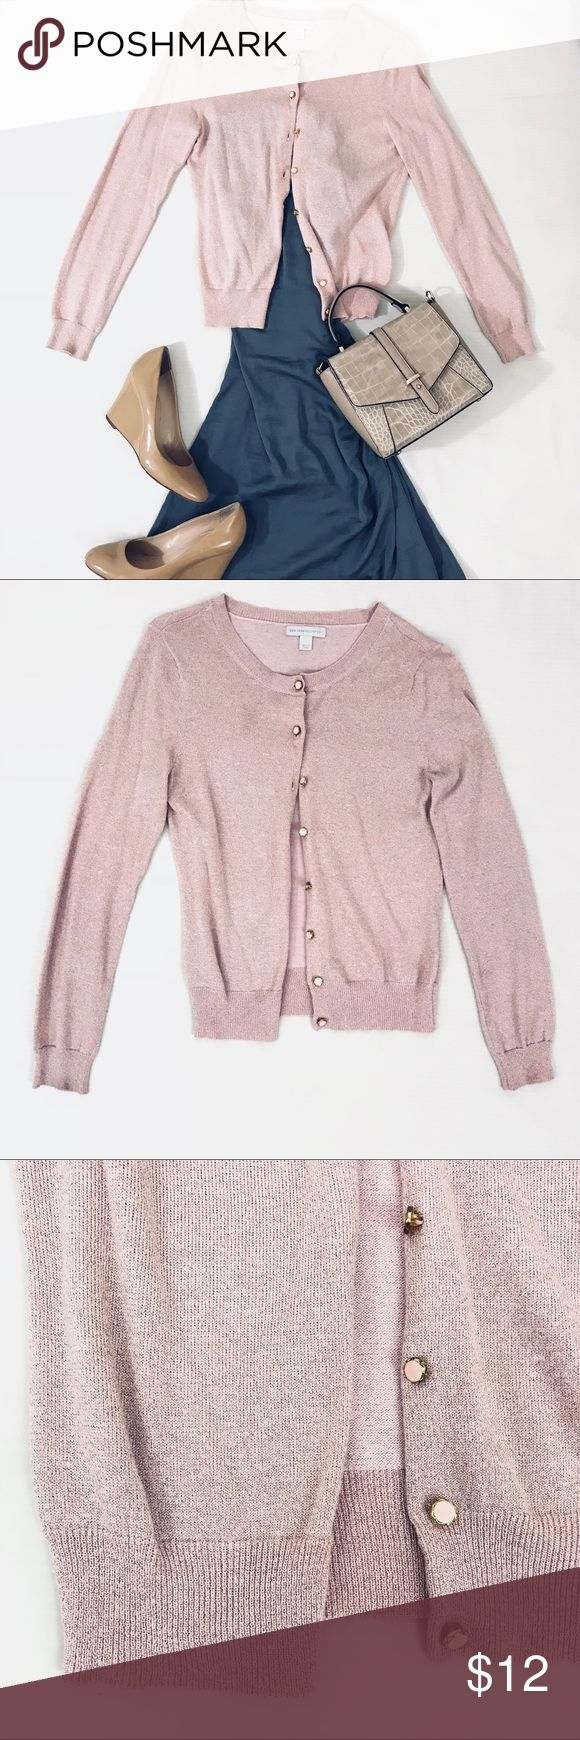 Blush Pink New York & Company Metallic Cardigan Chic cardigan with metallic tones in blush pink In excellent condition; no holes, tears, or pilling  Front button closure New York & Company Sweaters Cardigans